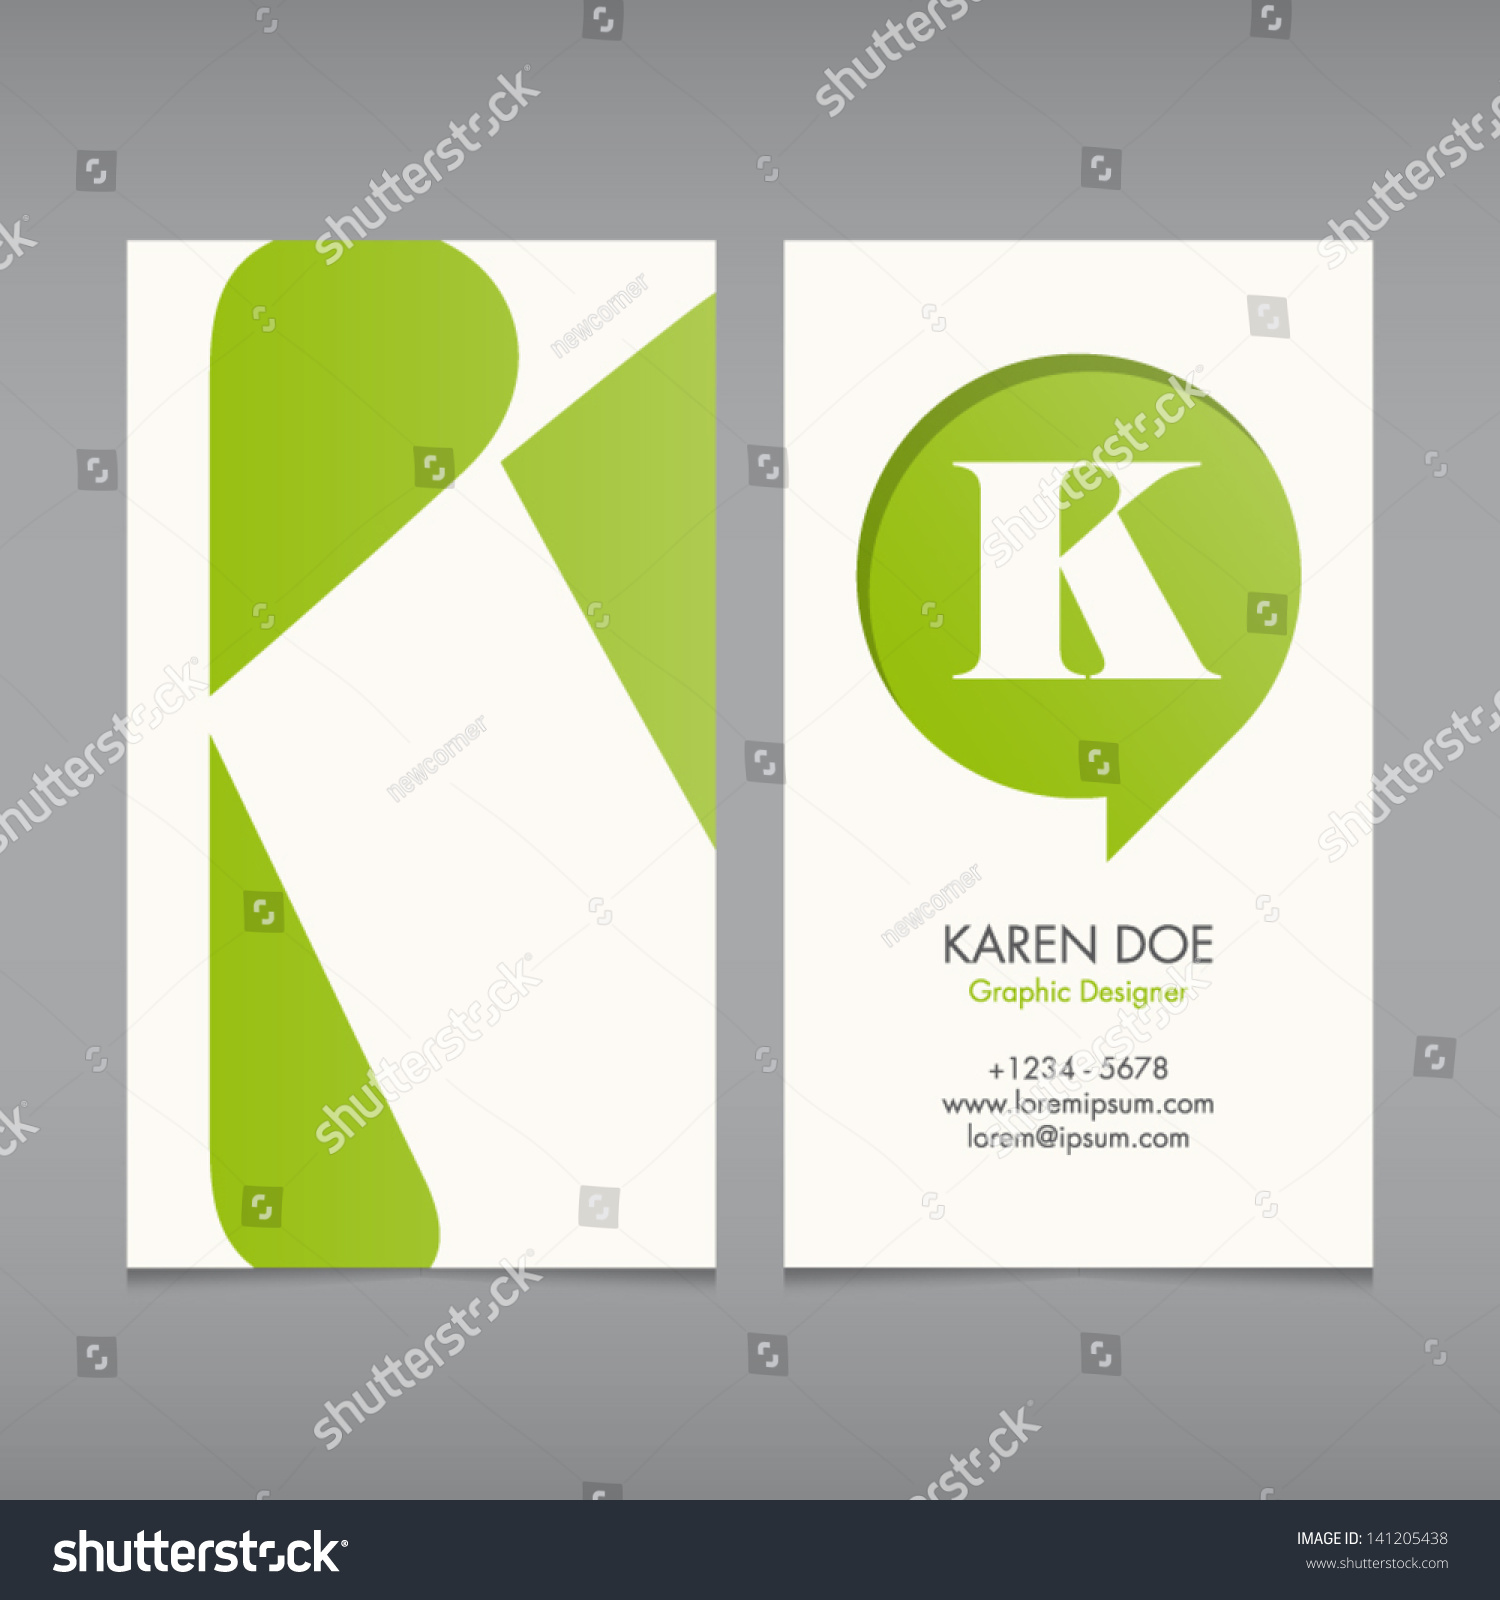 Business card vector template alphabet letter stock vector 141205438 business card vector template alphabet letter stock vector 141205438 shutterstock reheart Image collections